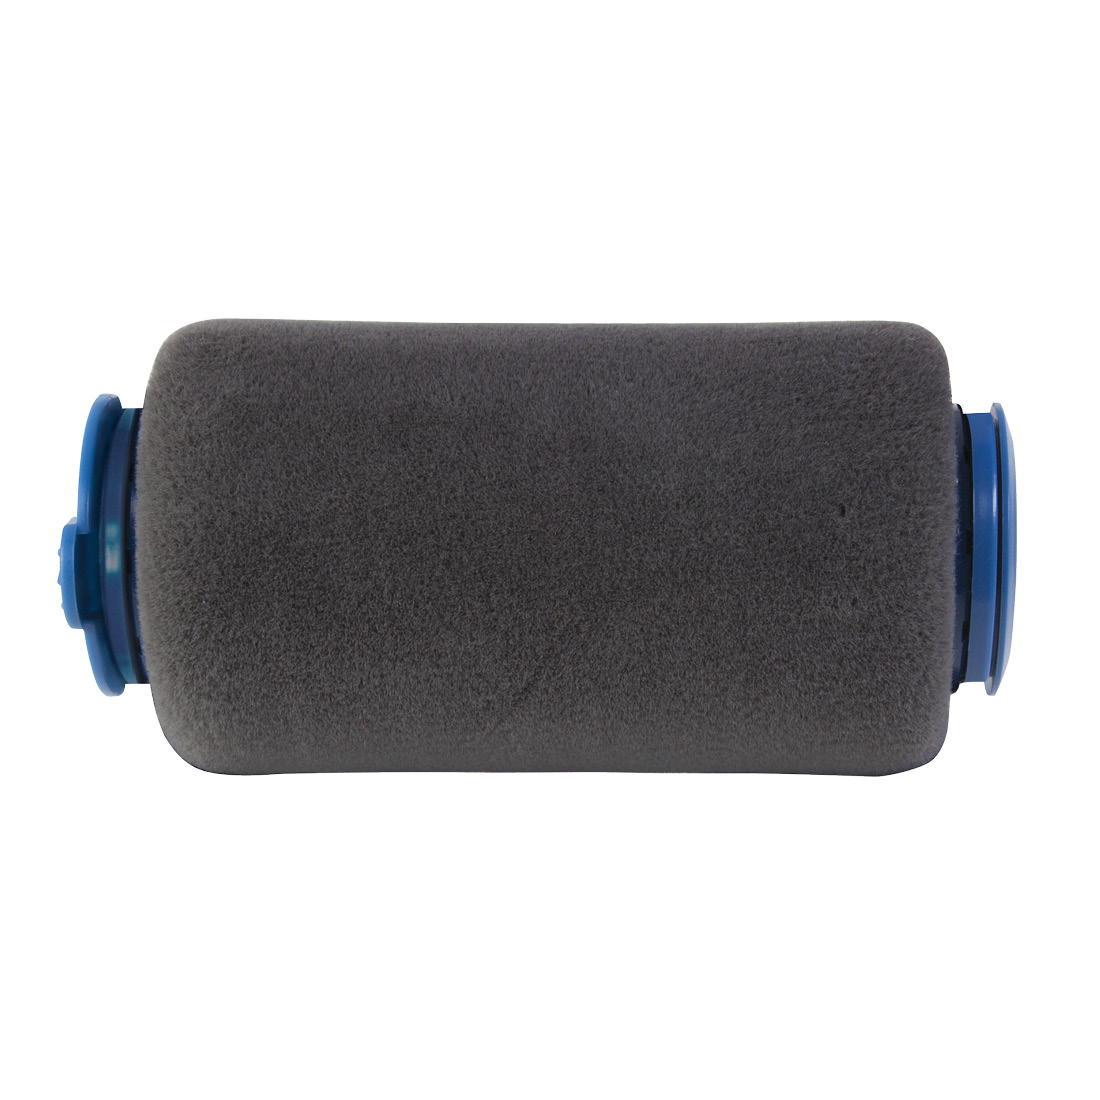 An image of Paint Runner Pro Roller Sleeve Accessory by The Renovator